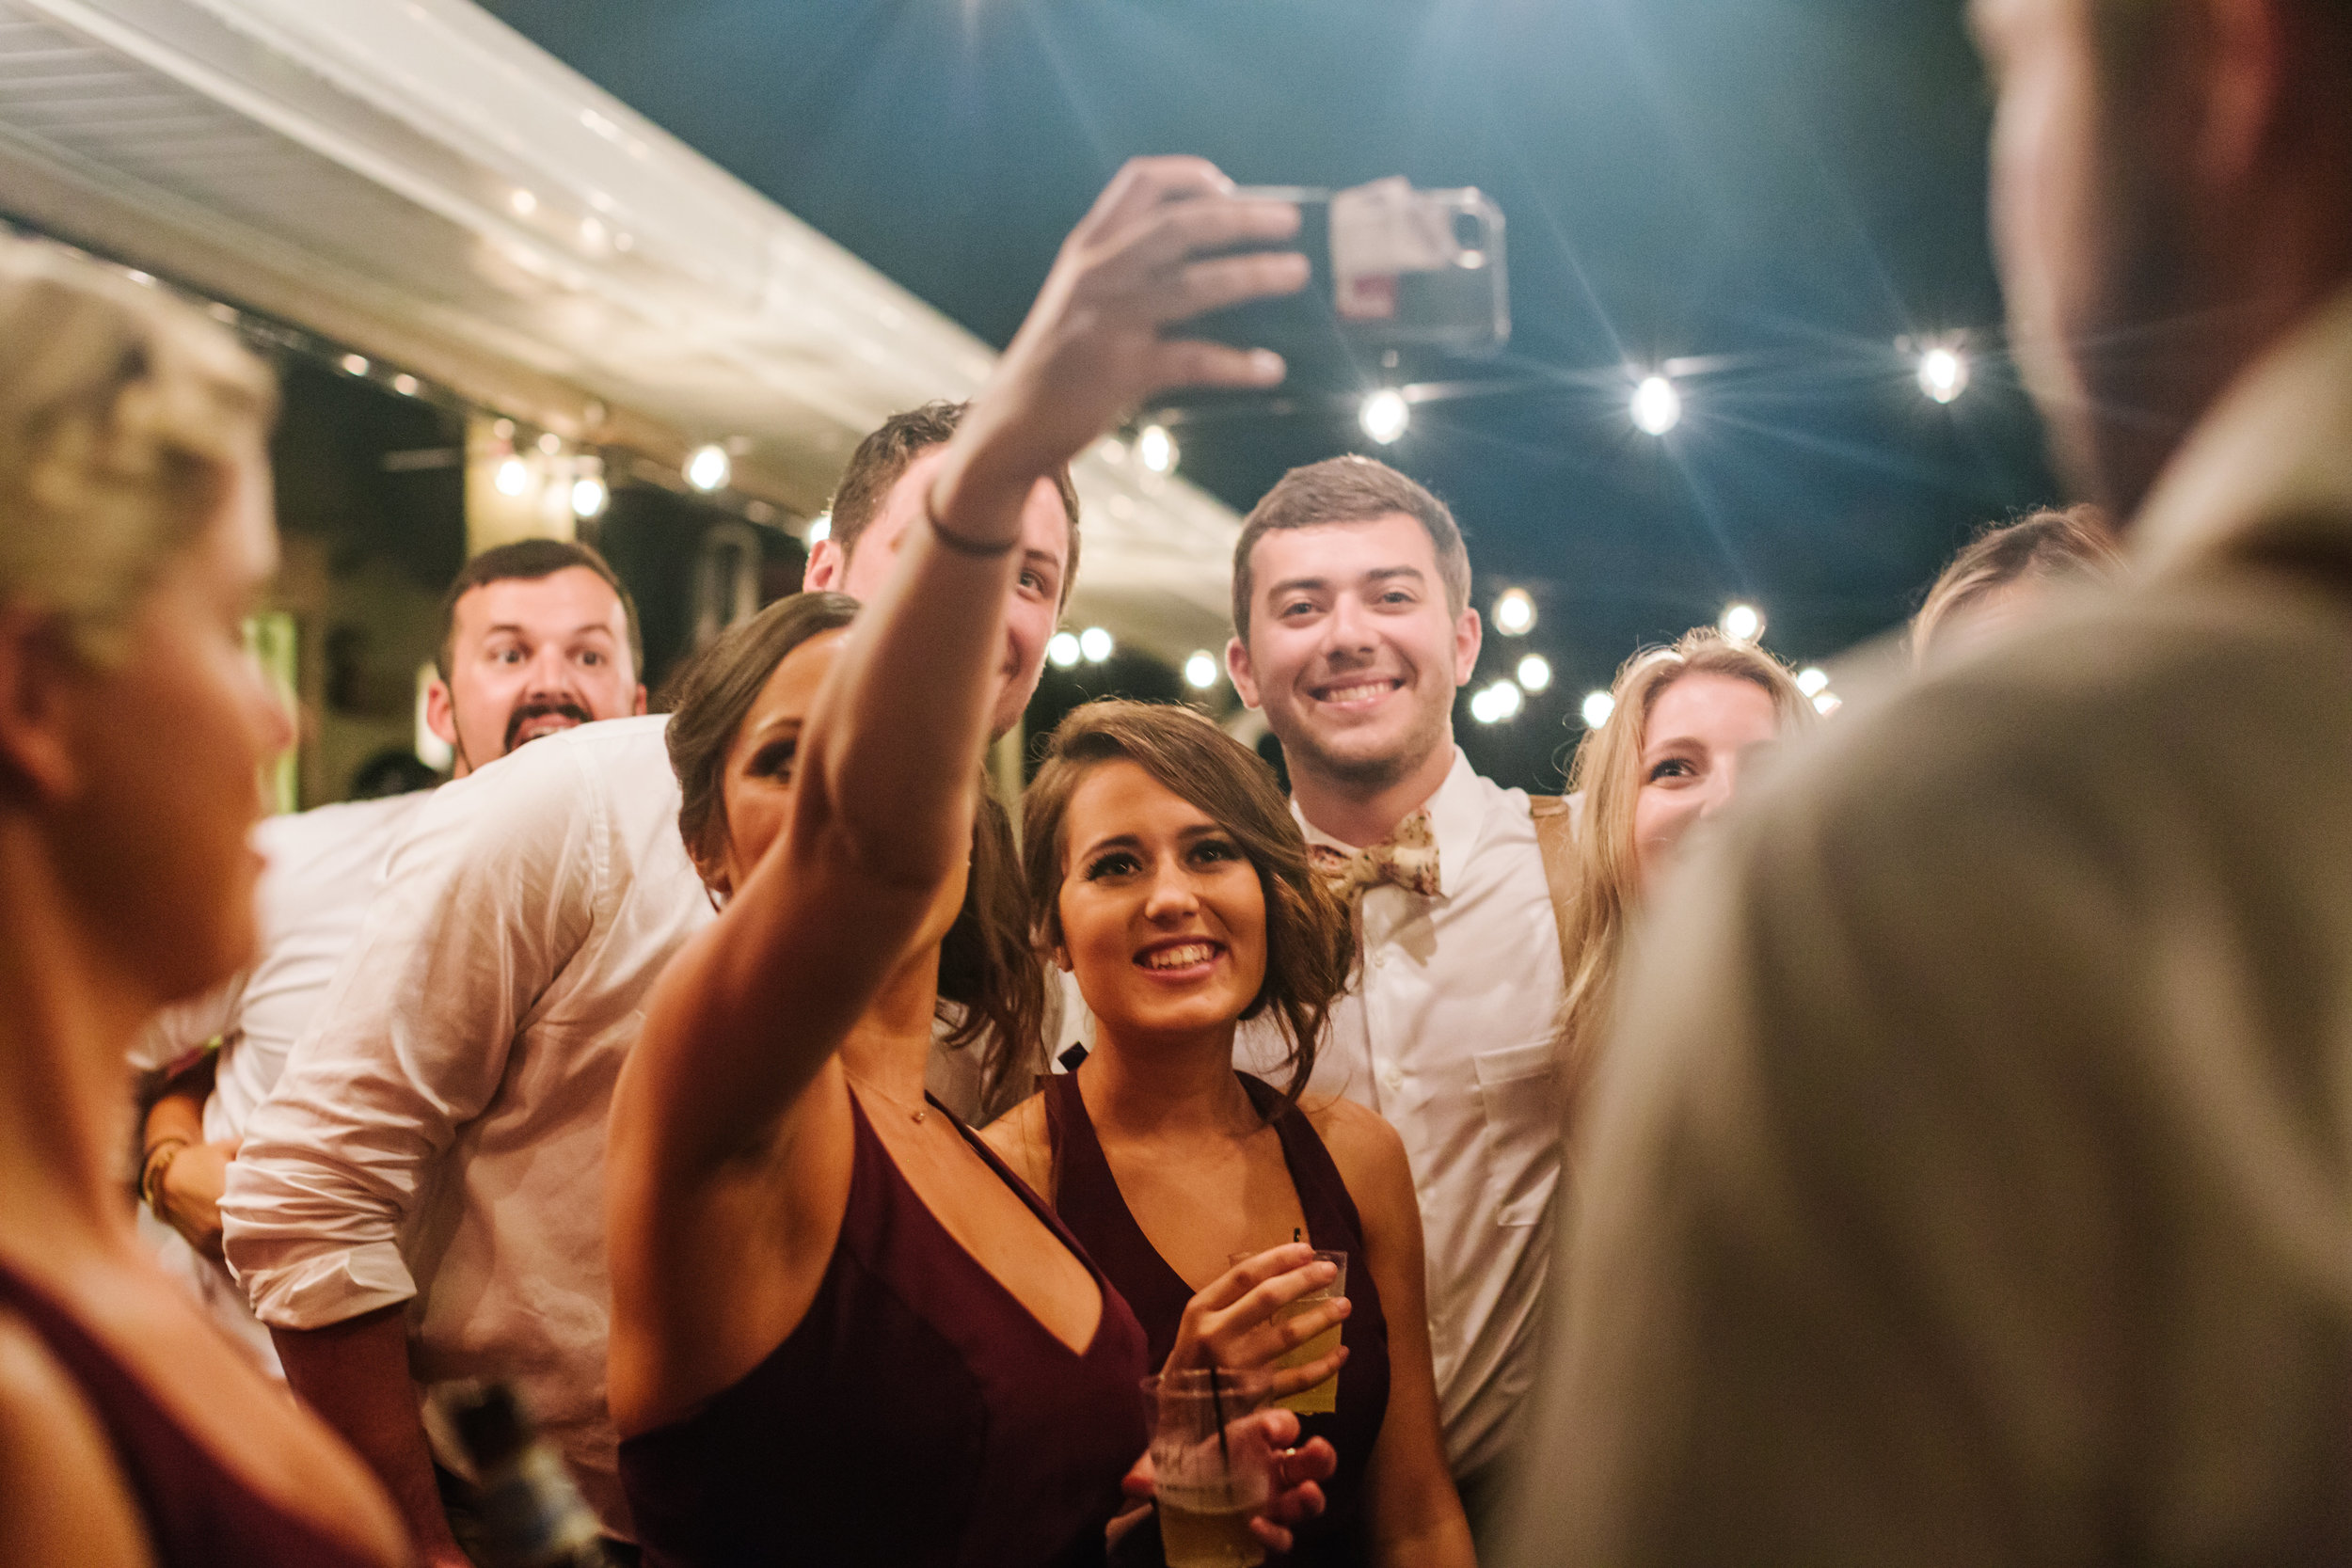 2018.07.28 Brooke and Korey Arnold Winter Springs Wedding FINALS-817.jpg